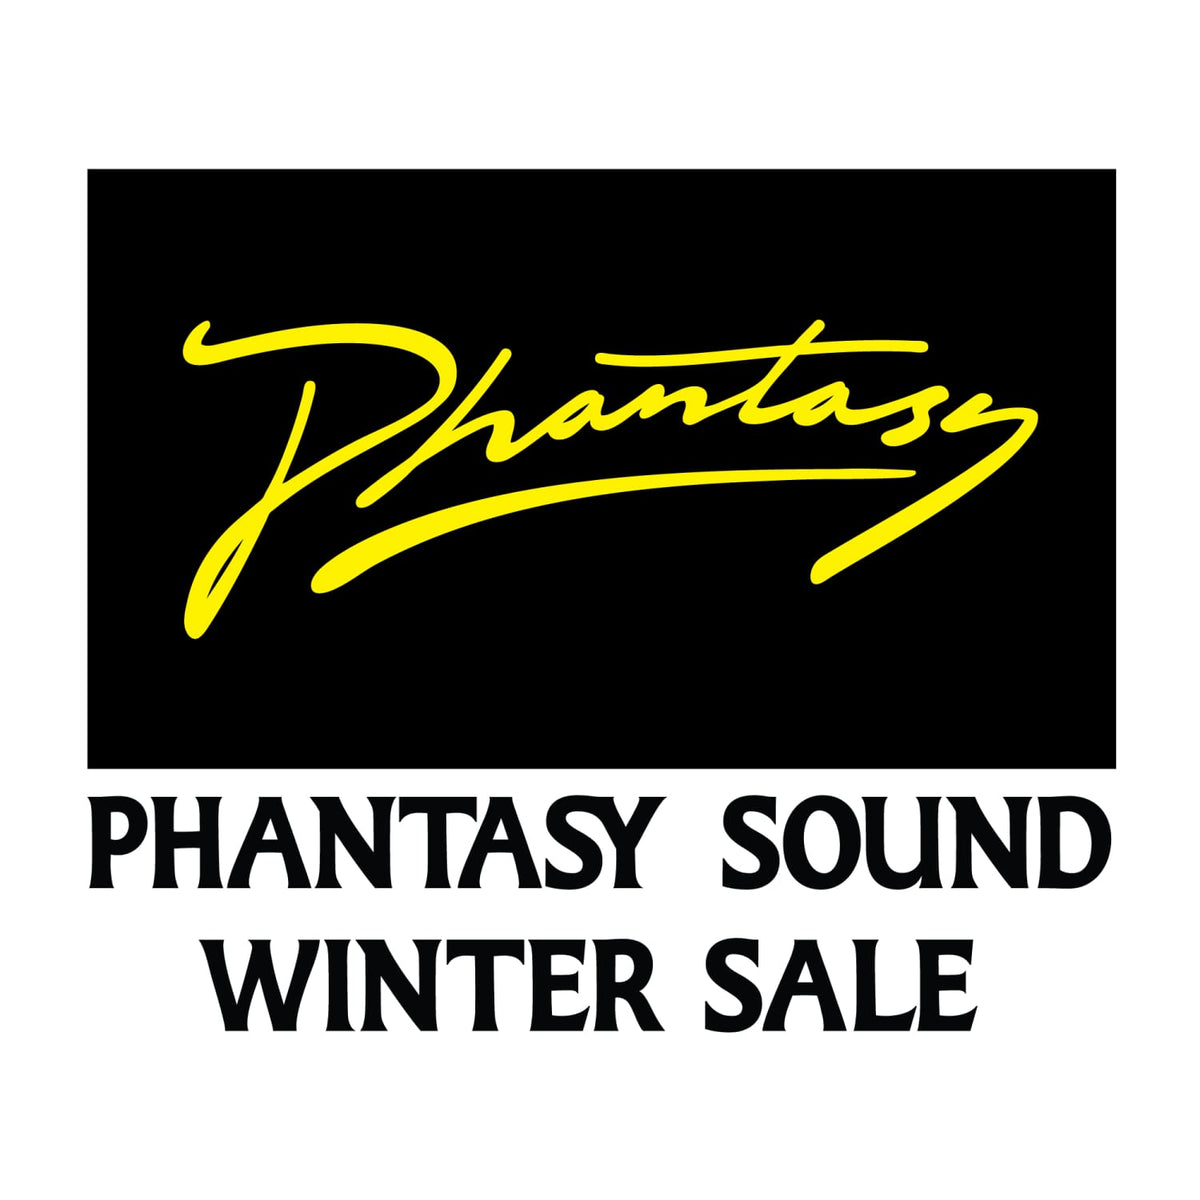 Phantasy Sound Winter Sale